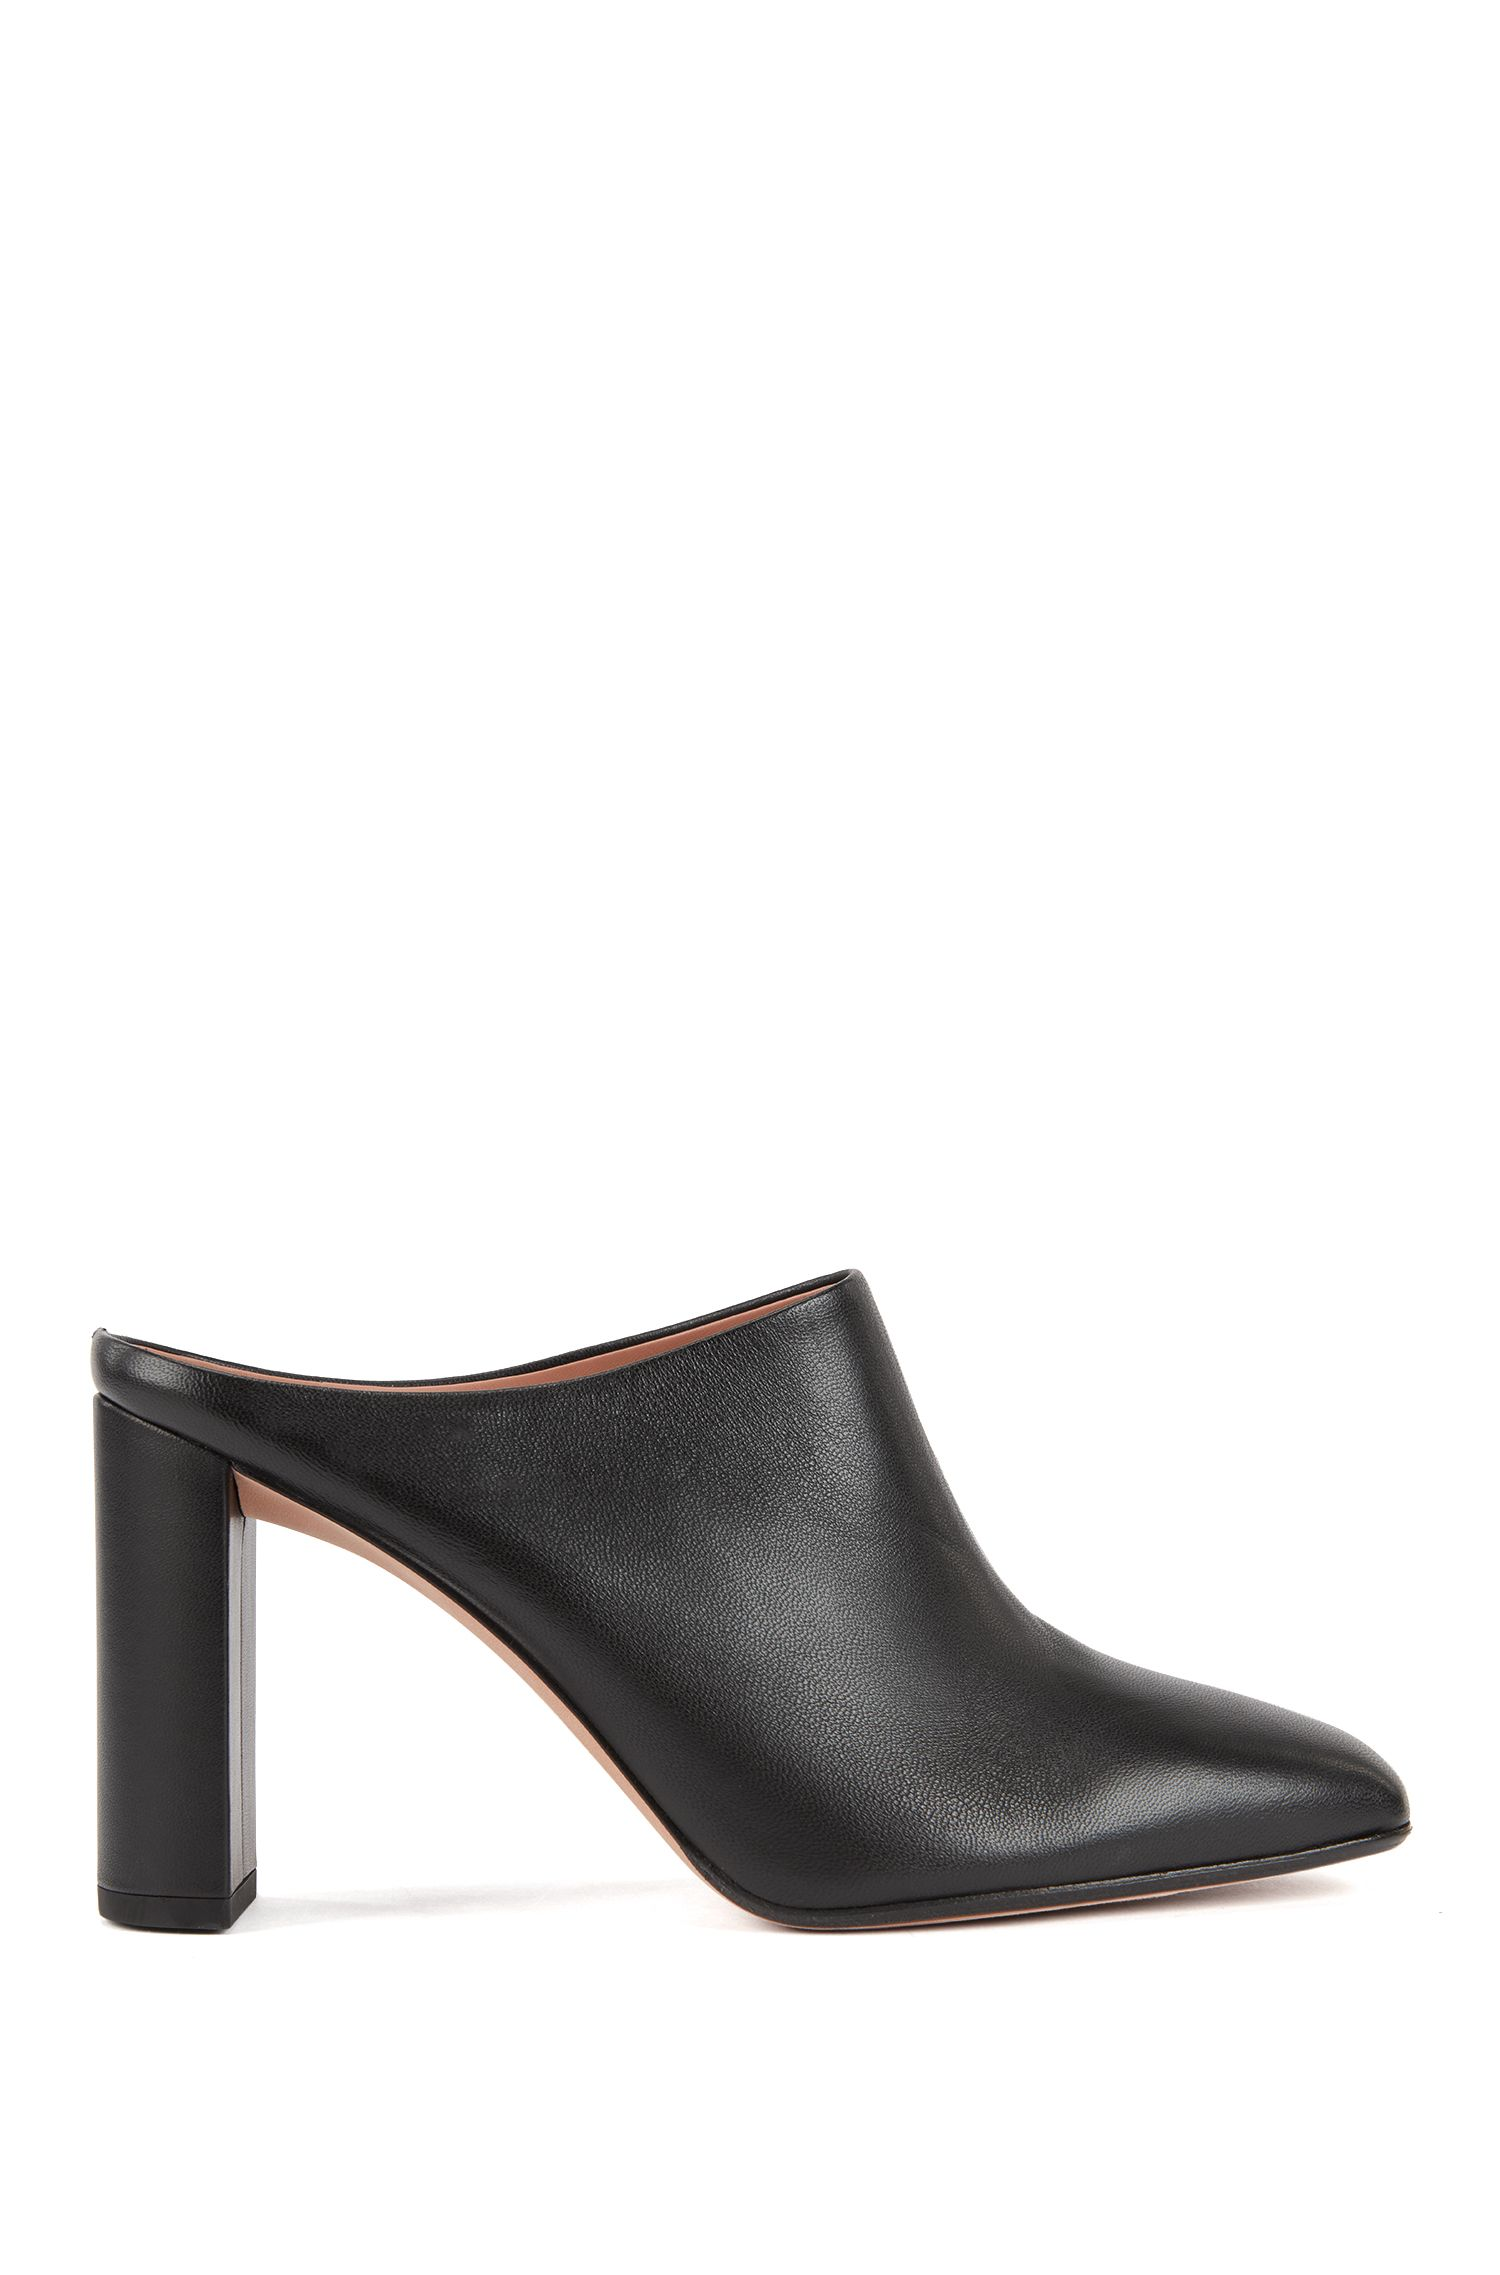 Lambskin leather mules with block heel, Black